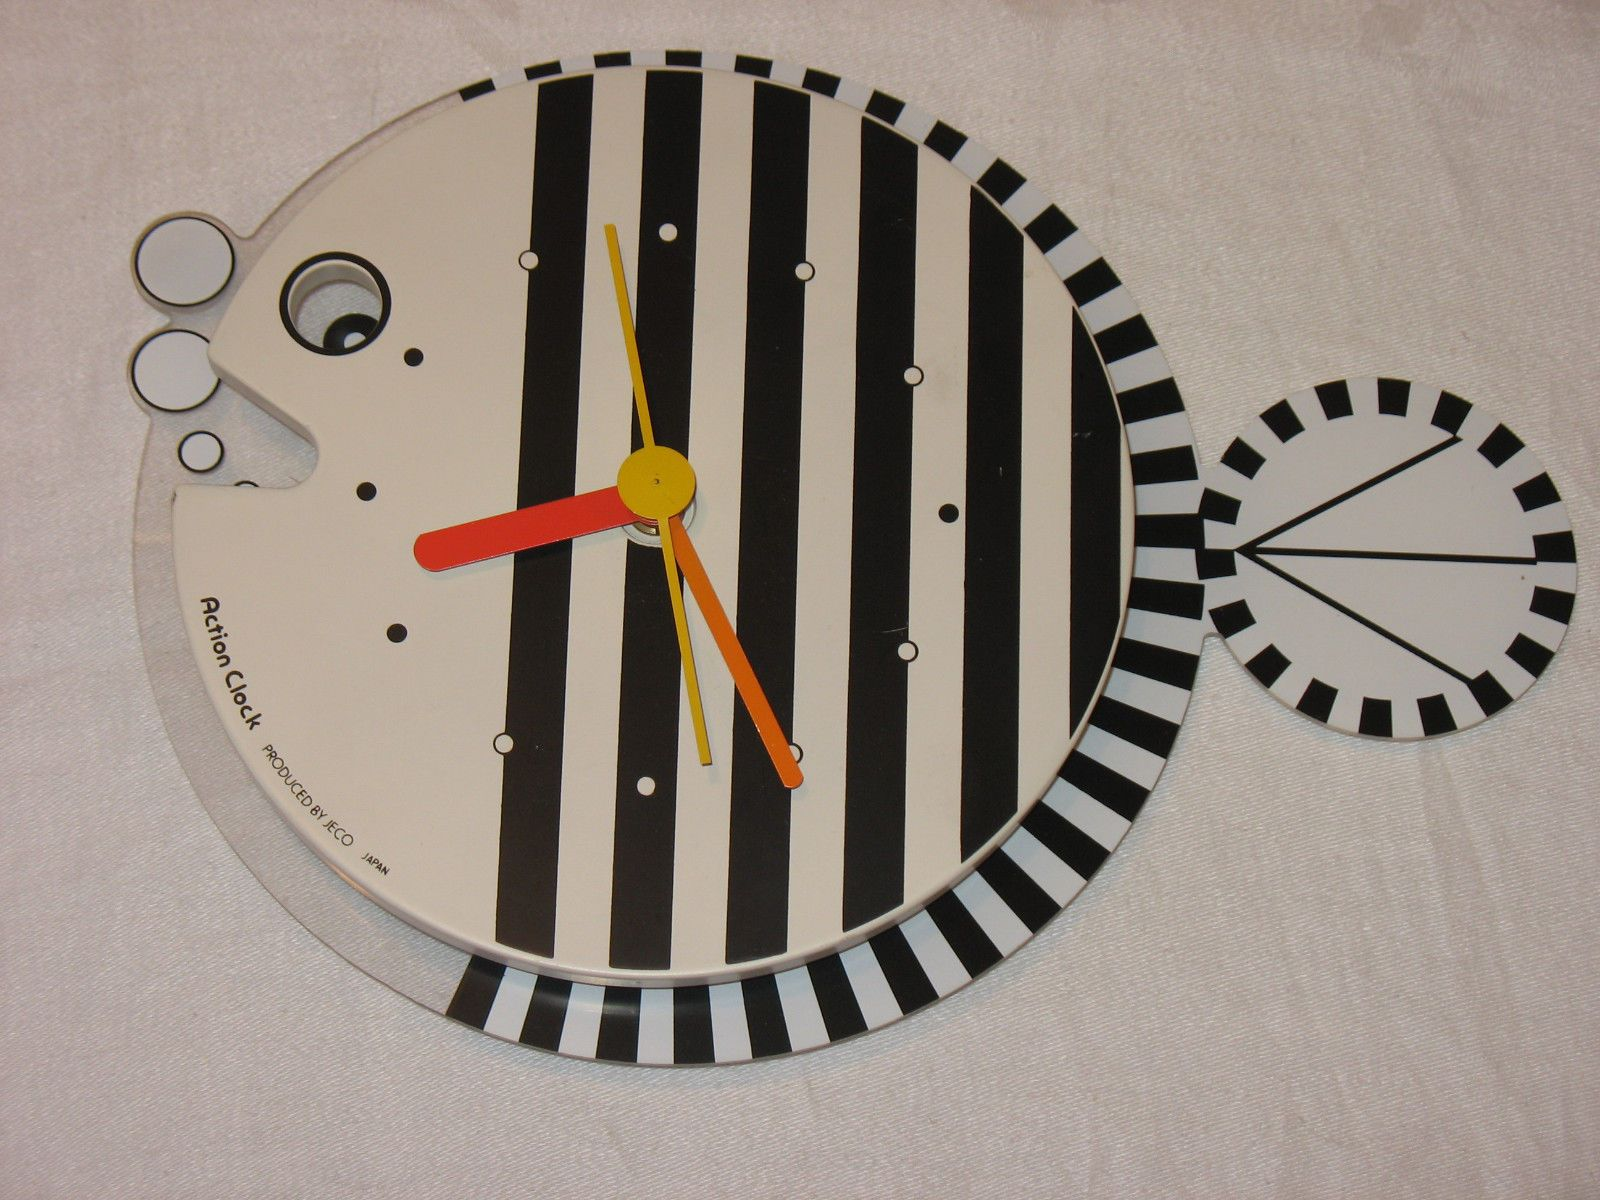 Vintage fish motion action clock produced by jeco japan works vintage fish motion action clock produced by jeco japan works ebay amipublicfo Images